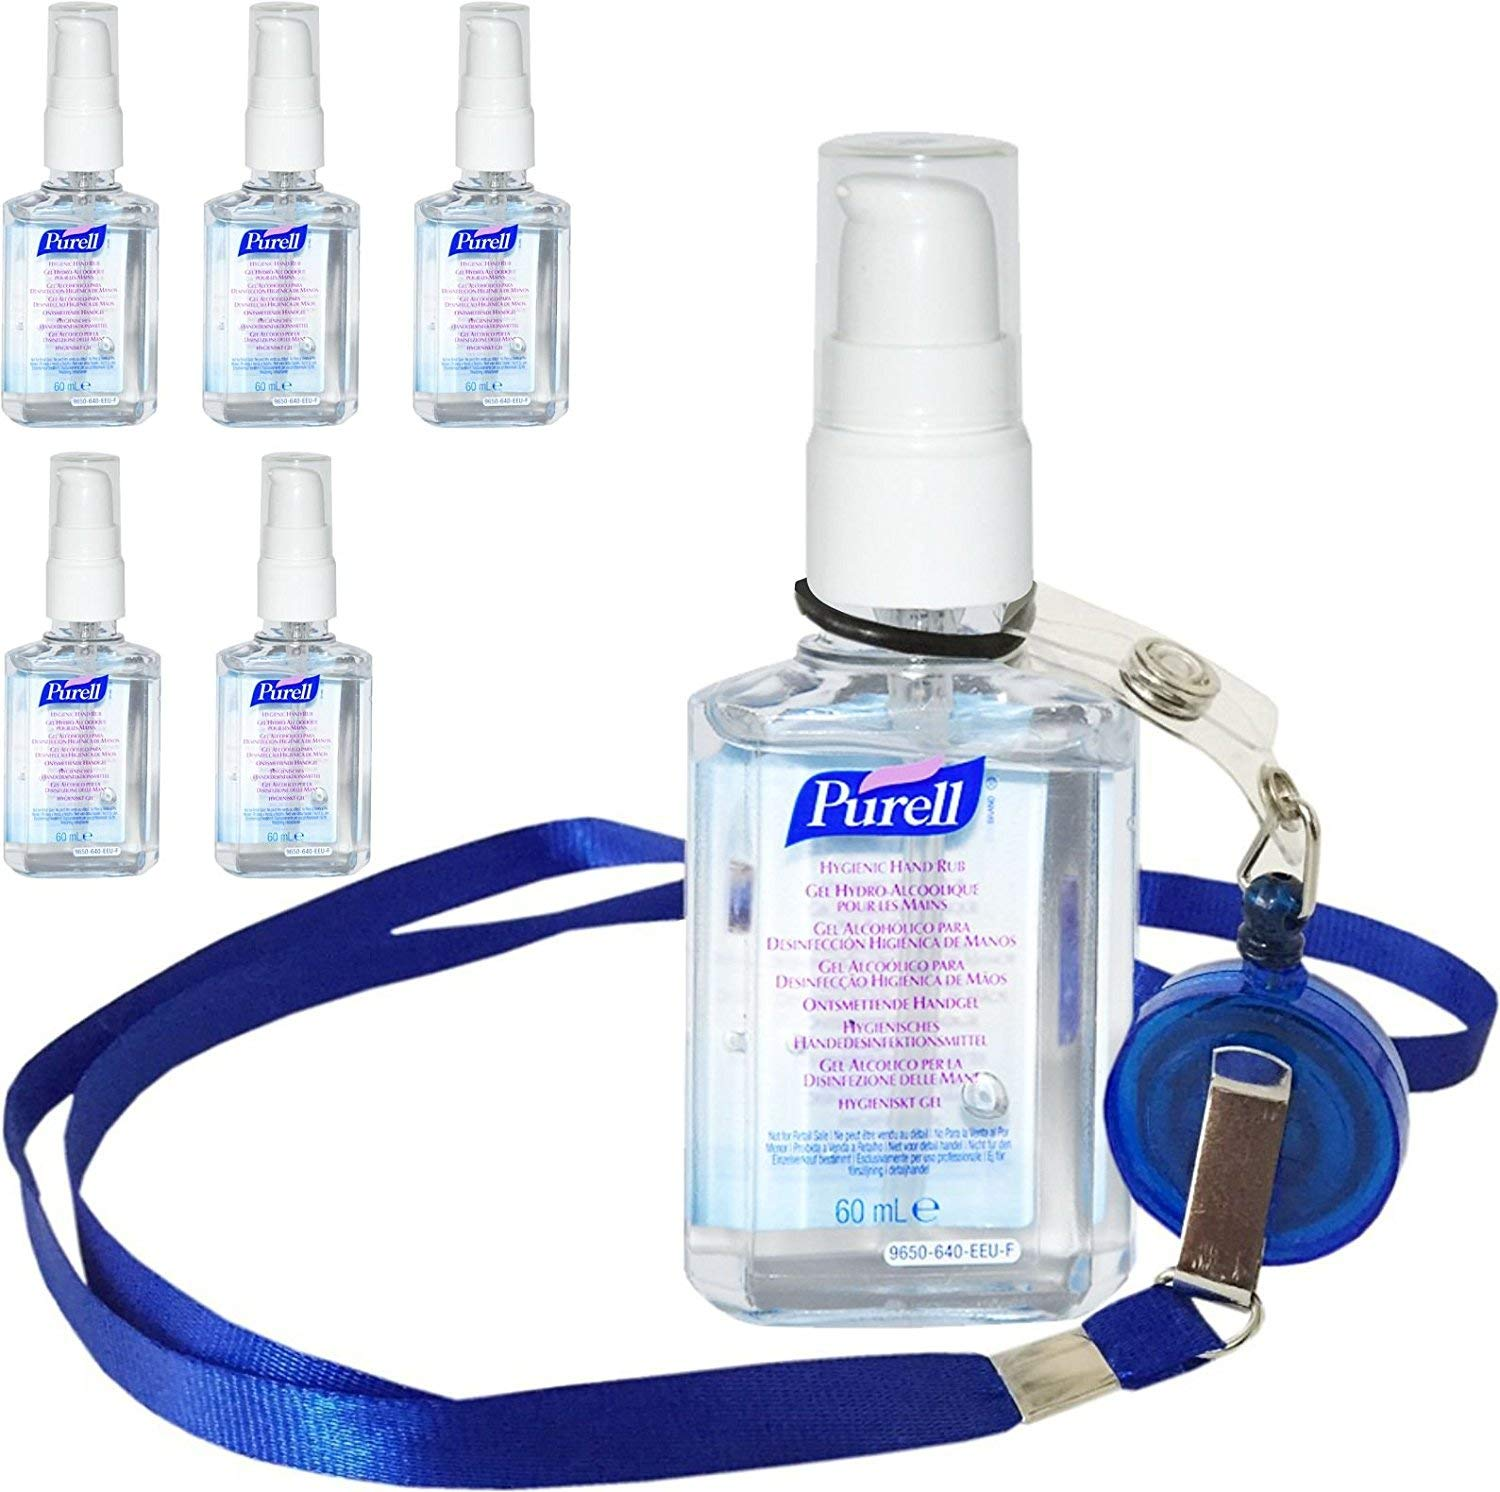 6 x Purell Hygenic Hand Sanitizer Gel / Rub 60ml Personal Pump Bottles Used by Hospitals Gojo